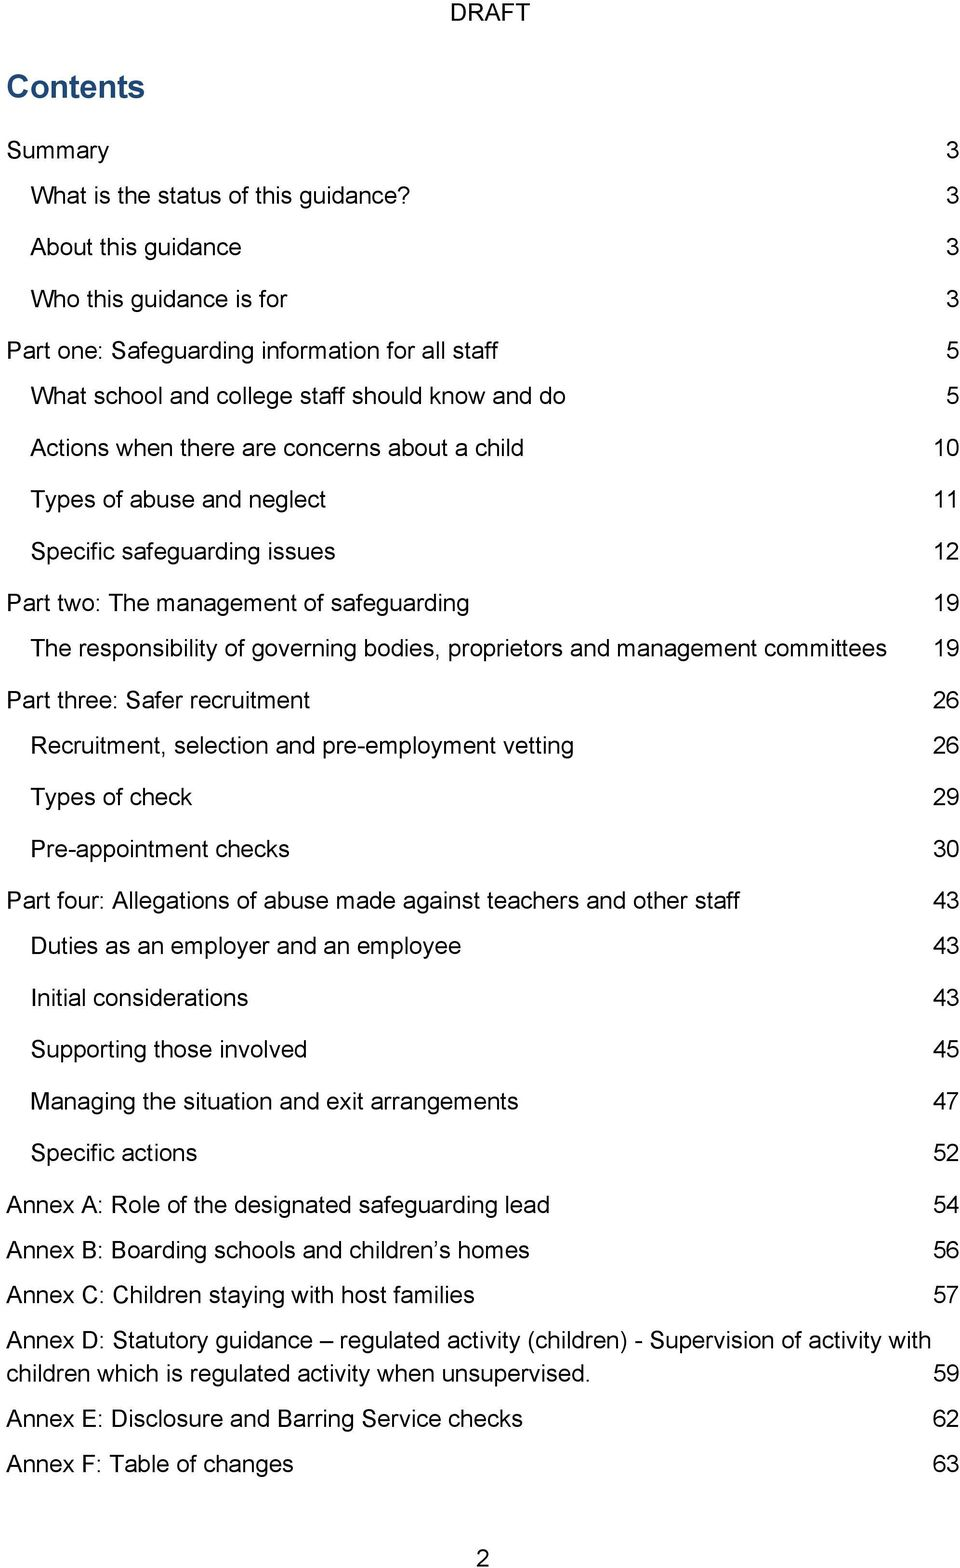 10 Types of abuse and neglect 11 Specific safeguarding issues 12 Part two: The management of safeguarding 19 The responsibility of governing bodies, proprietors and management committees 19 Part